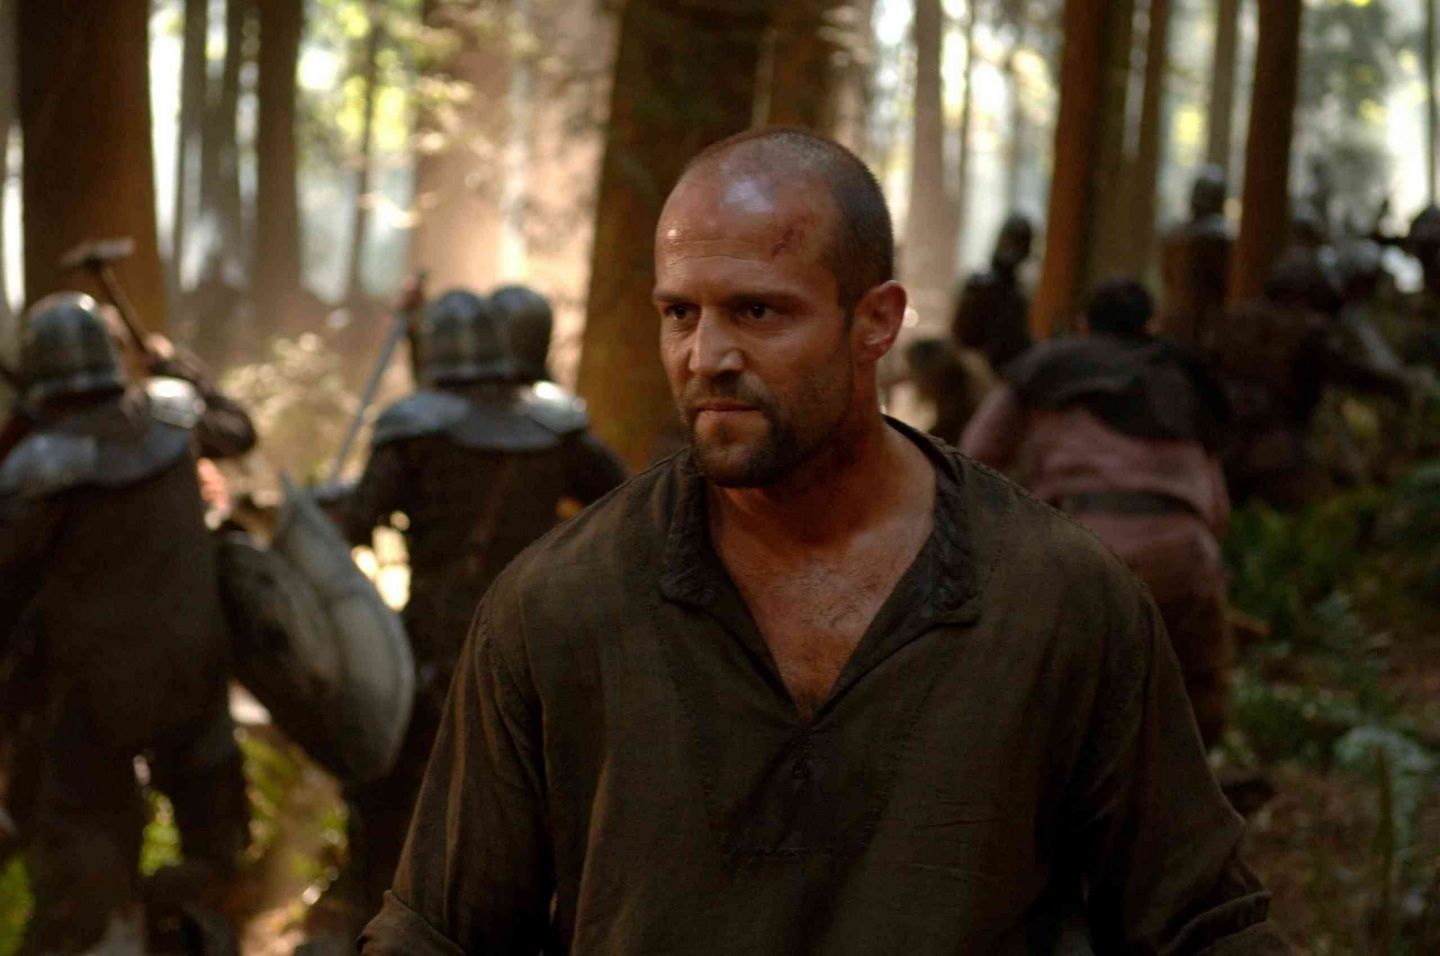 Jason Statham as Farmer in In the Name of the King: A Dungeon Siege Tale (2007)